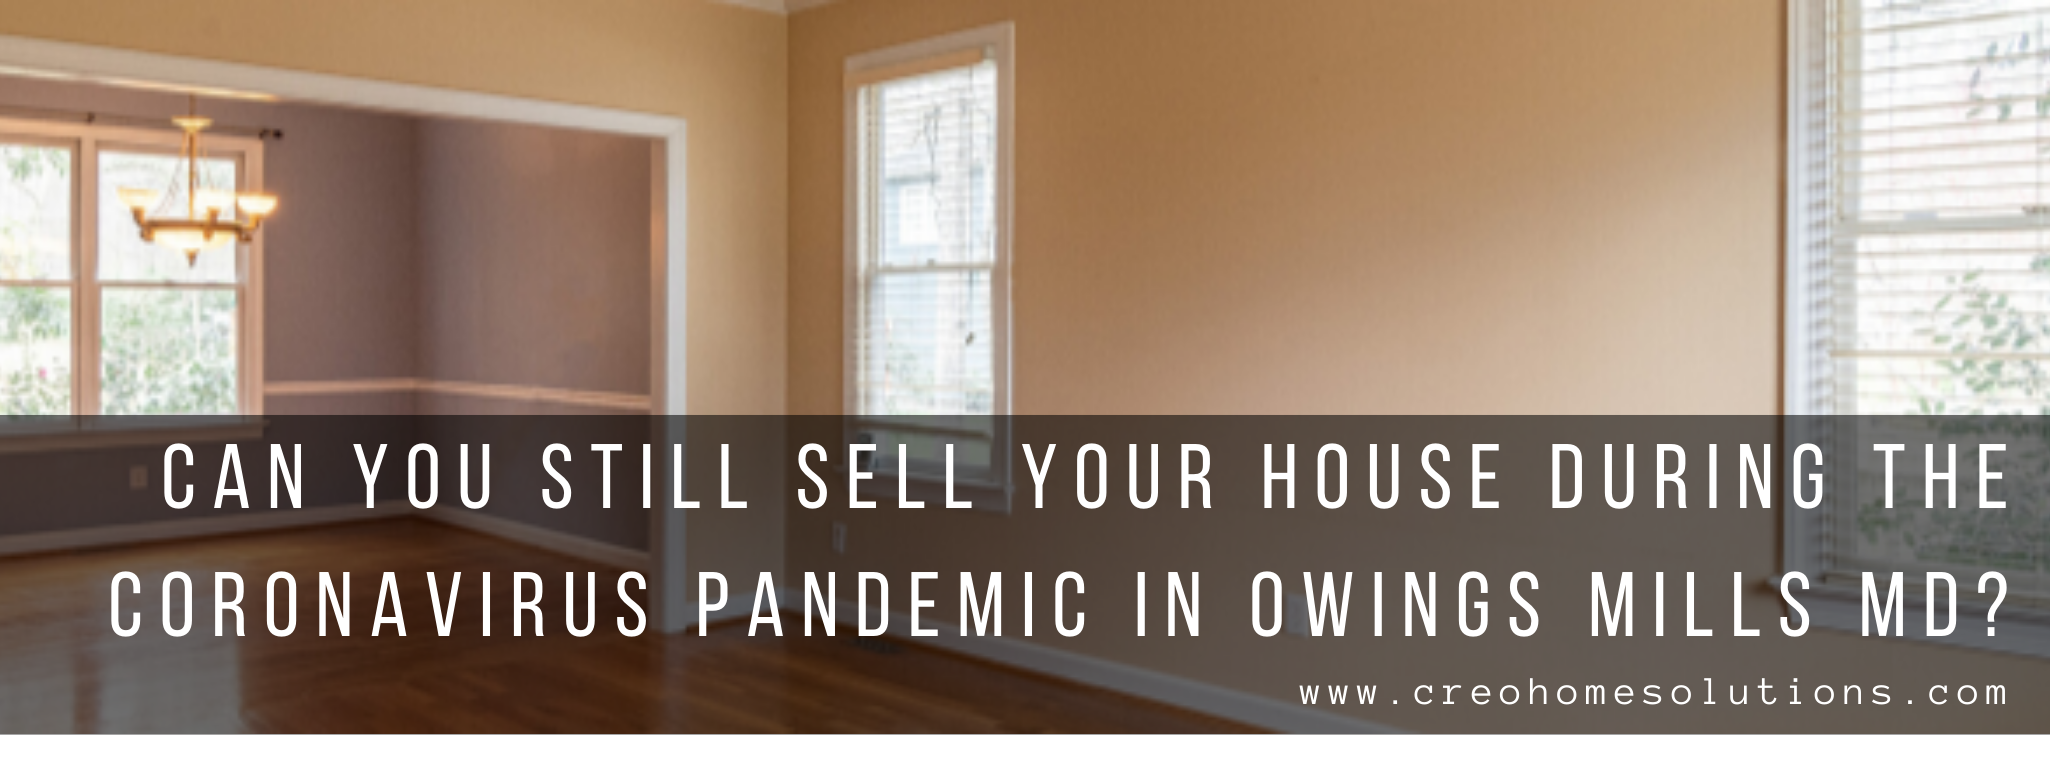 We buy properties in Owings Mills MD